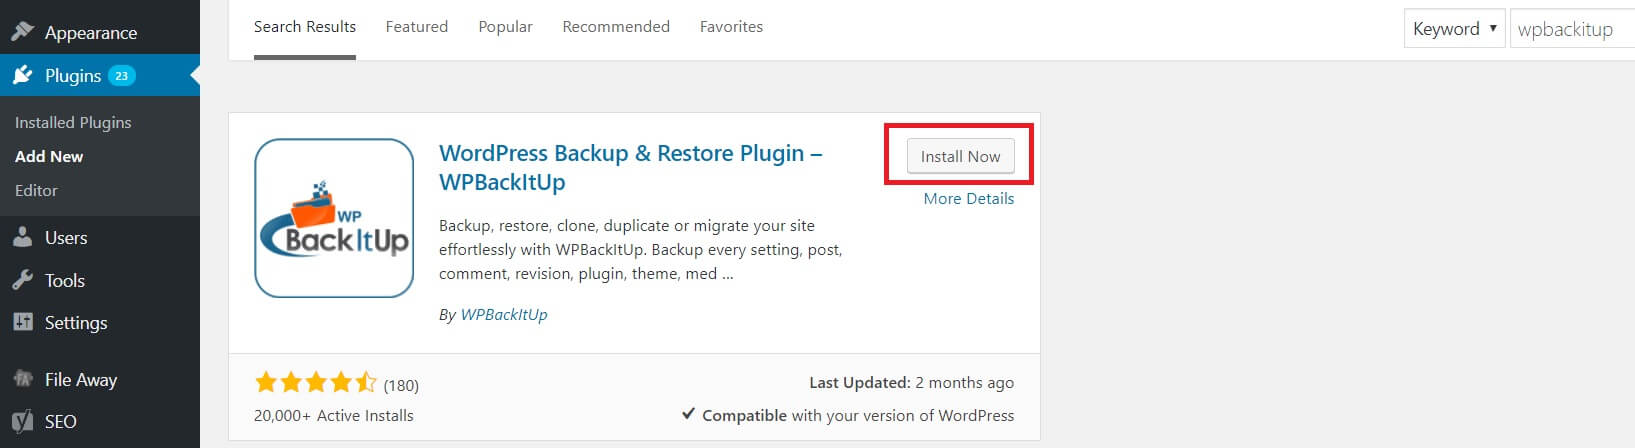 Install Now button for plugin installation